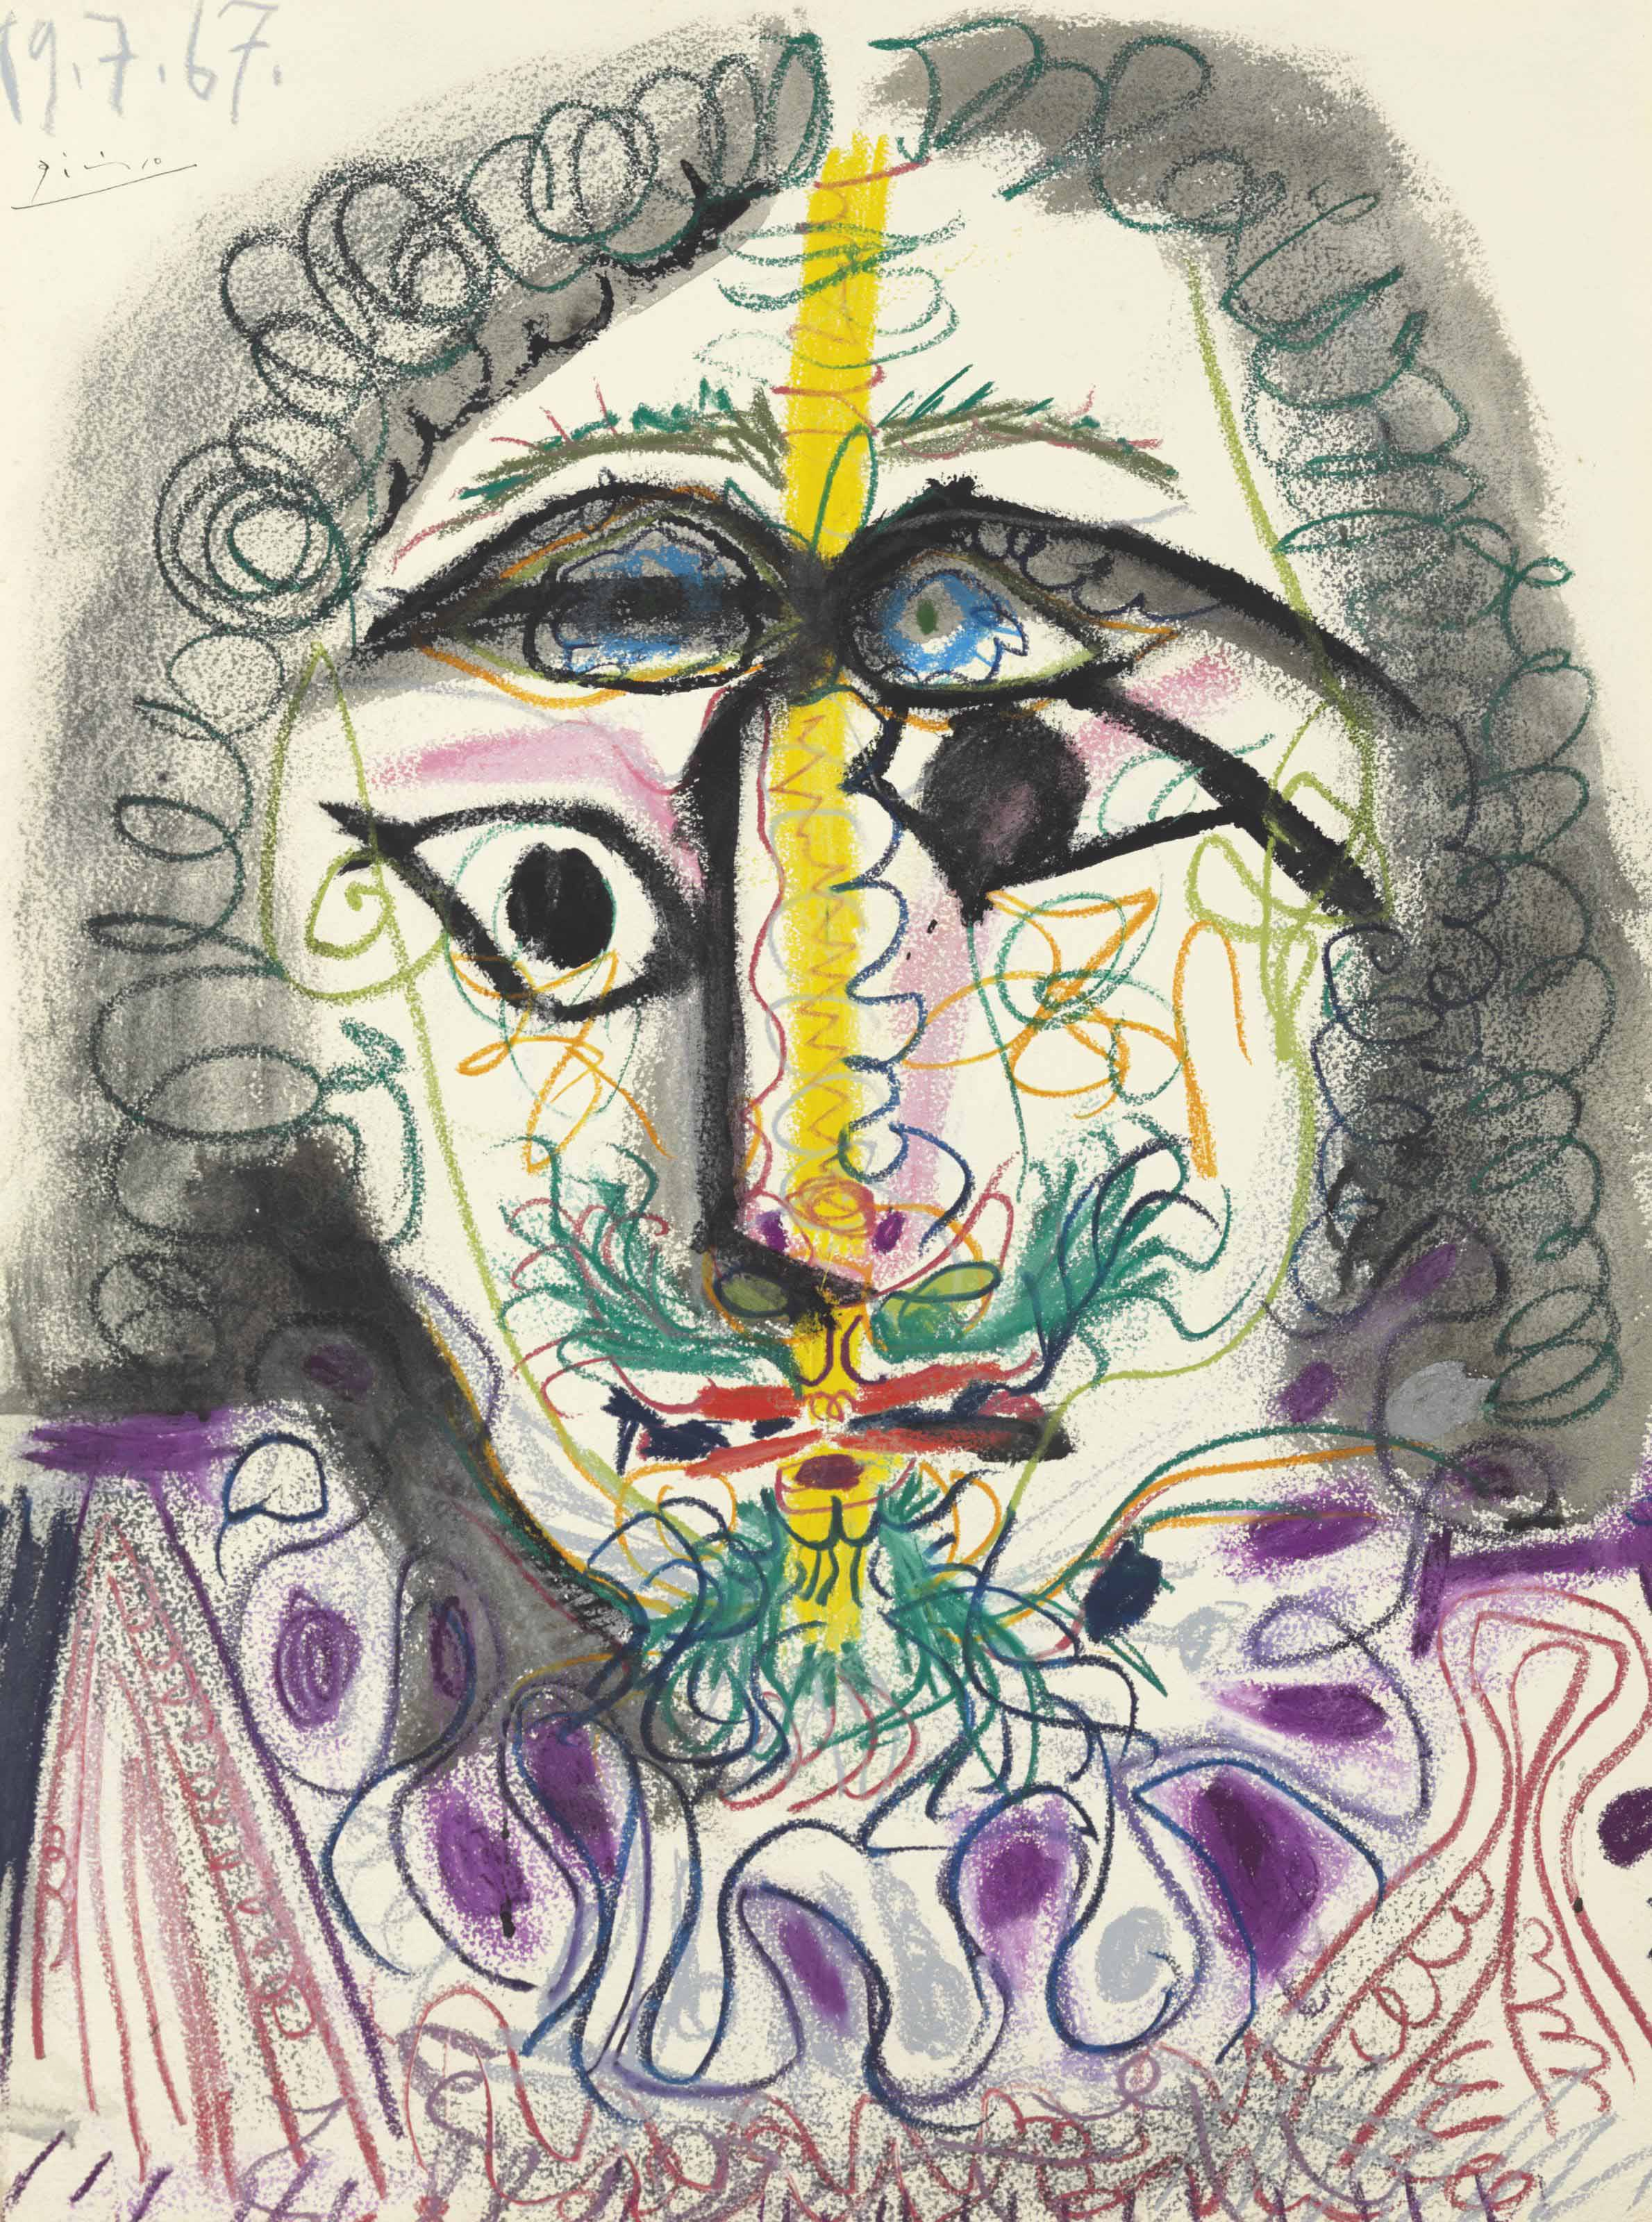 pablo picasso research paper This paper describes the influences on pablo picasso's work during the years between 1932 and 1935 the writer cites the influence of picasso's personal and romantic relationships as having a significant impact on his style and subject matter.